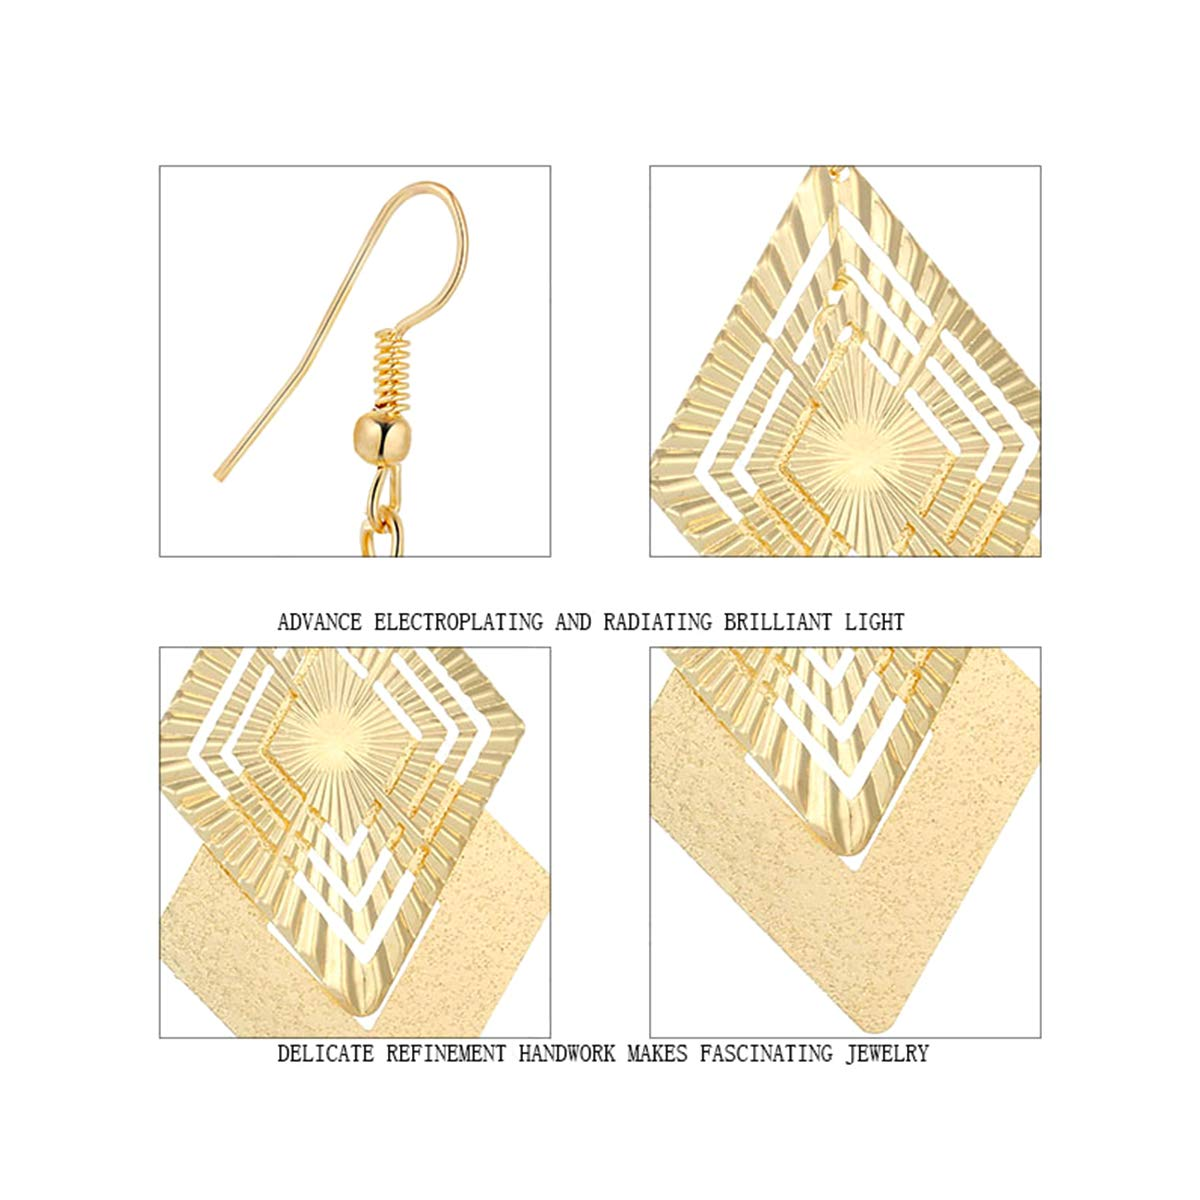 IDB Delicate Filigree Hollow Diamond Shape Dangling Drop Hook Earrings Gold Tone Available in Silver and Gold Tones